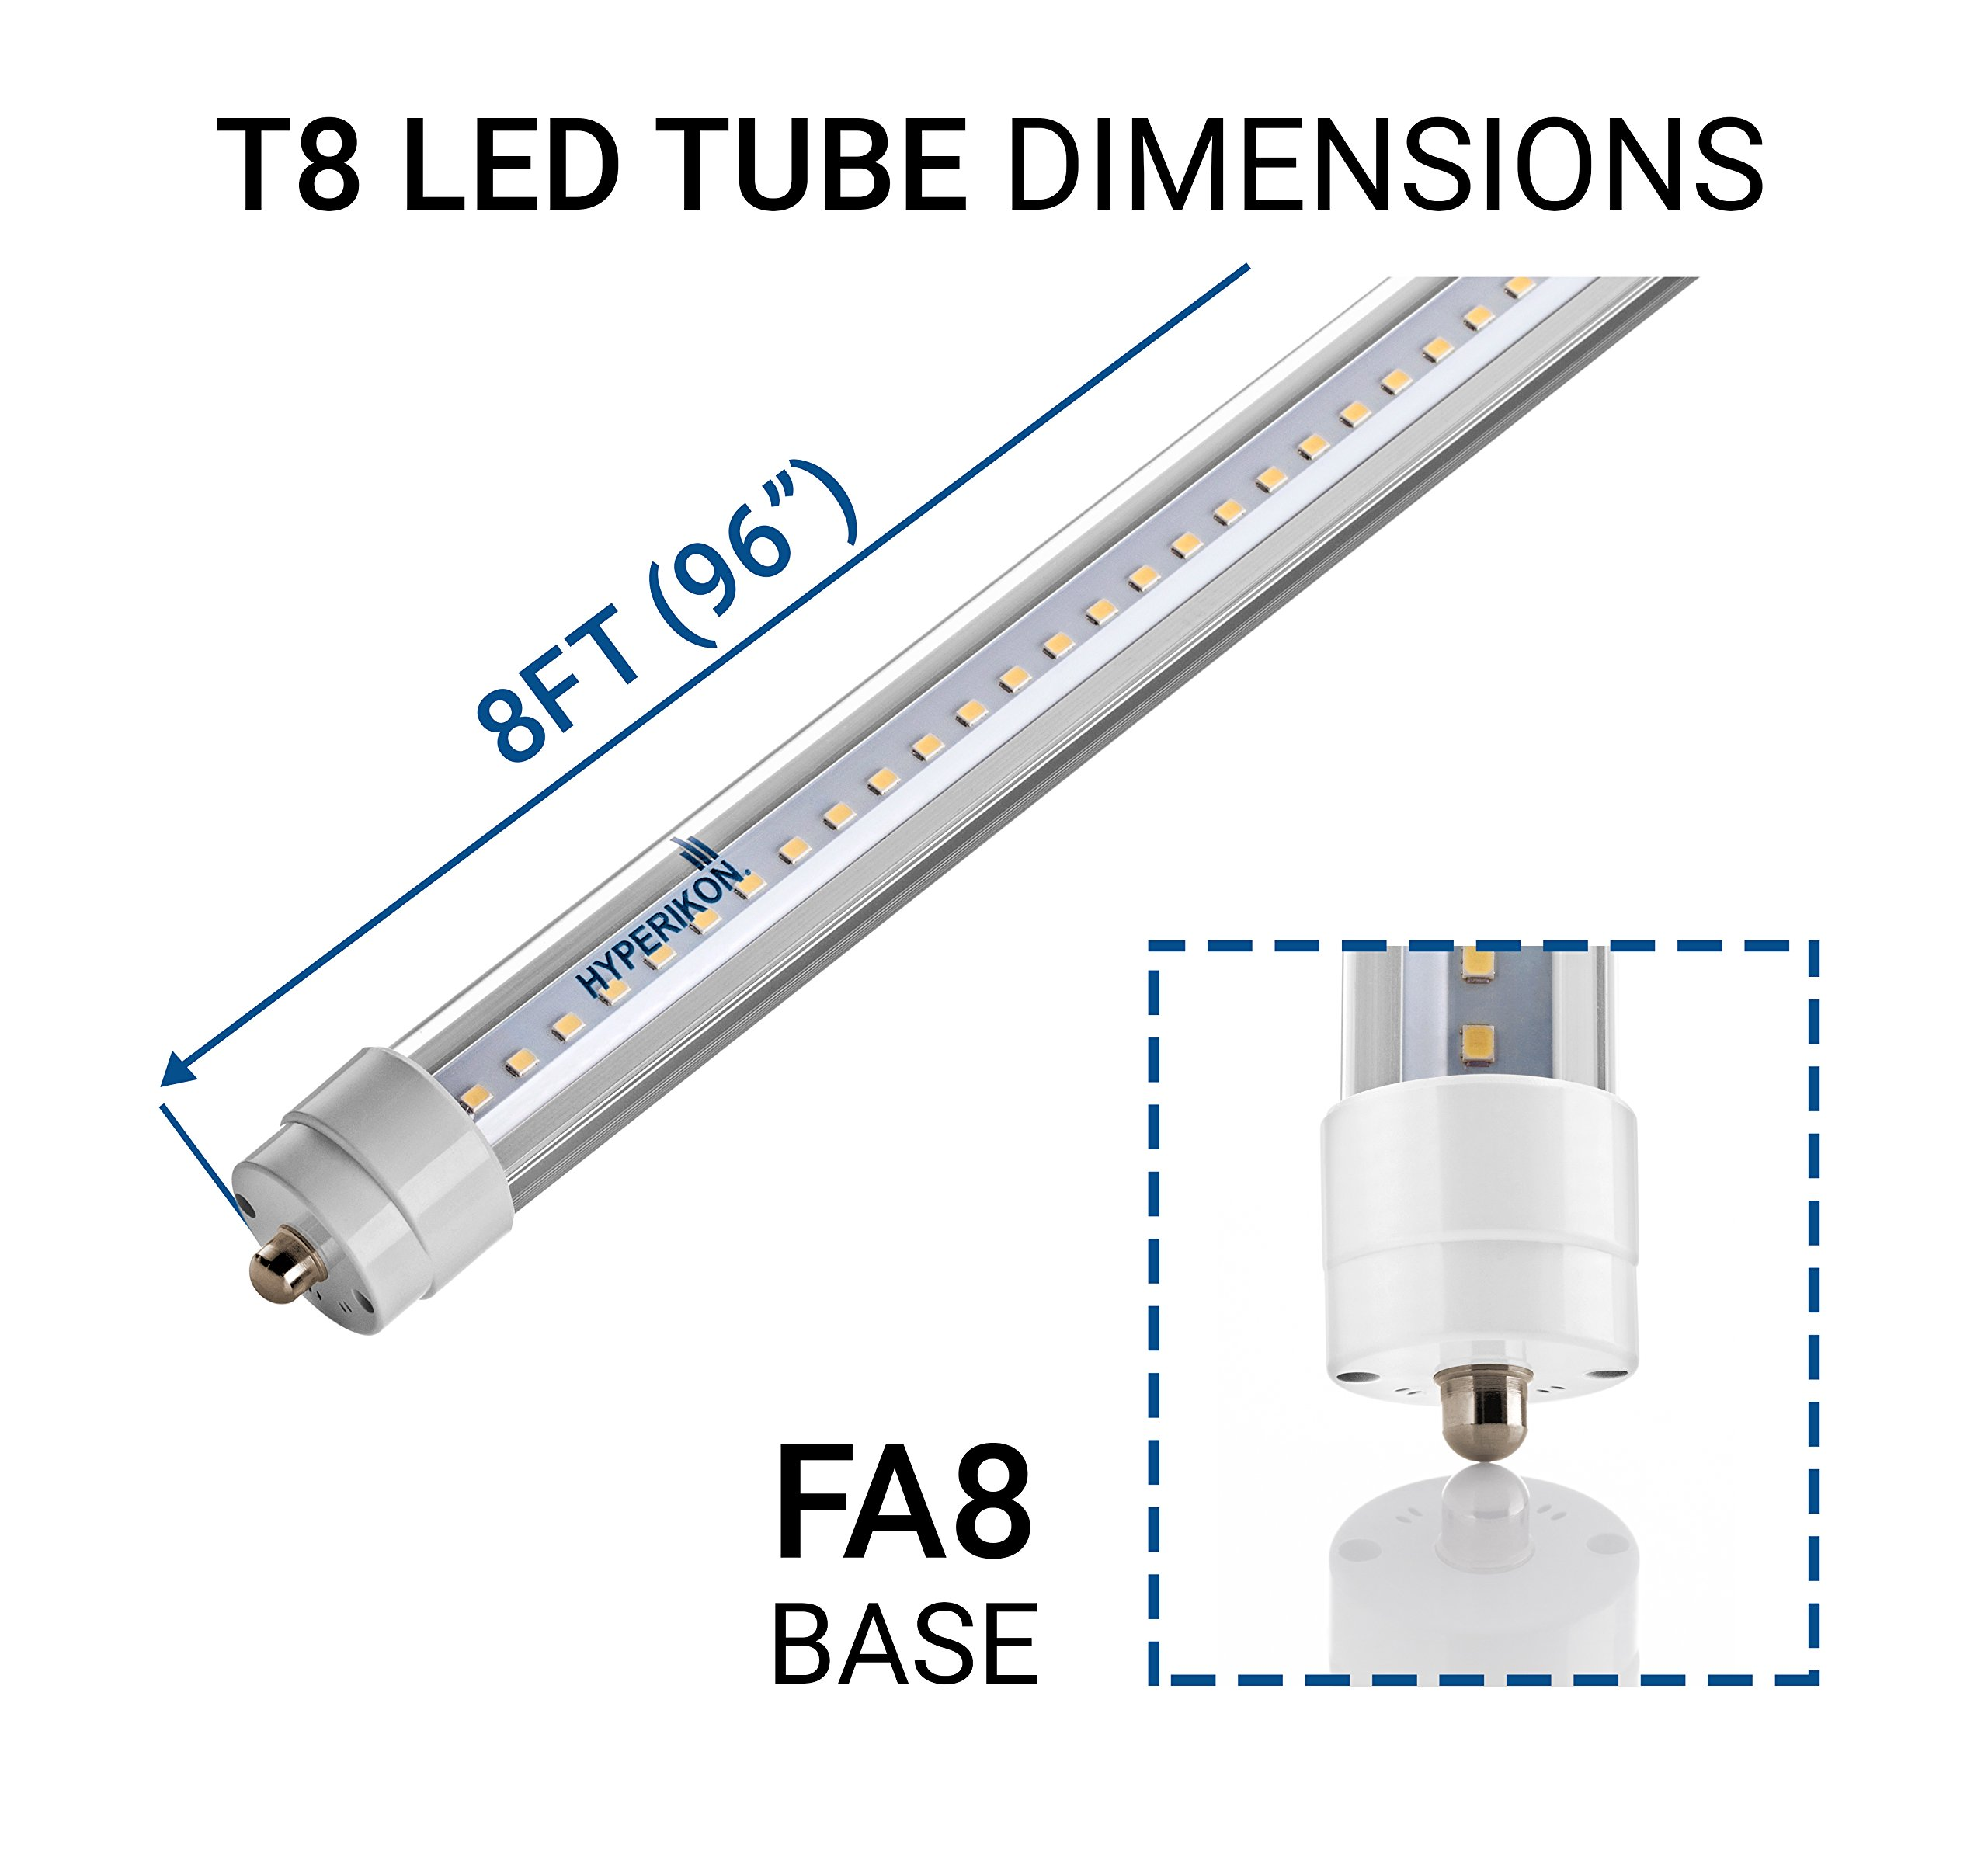 Hyperikon T8 T10 T12 8ft LED Tube Light, 36W (75W Equiv.), Dual-End Powered, Ballast Bypass, Shatterproof, Fluorescent Replacement, 5000k, Clear, 4400 Lumens, Workshop, Warehouse, Garage - 12 Pack by Hyperikon (Image #3)